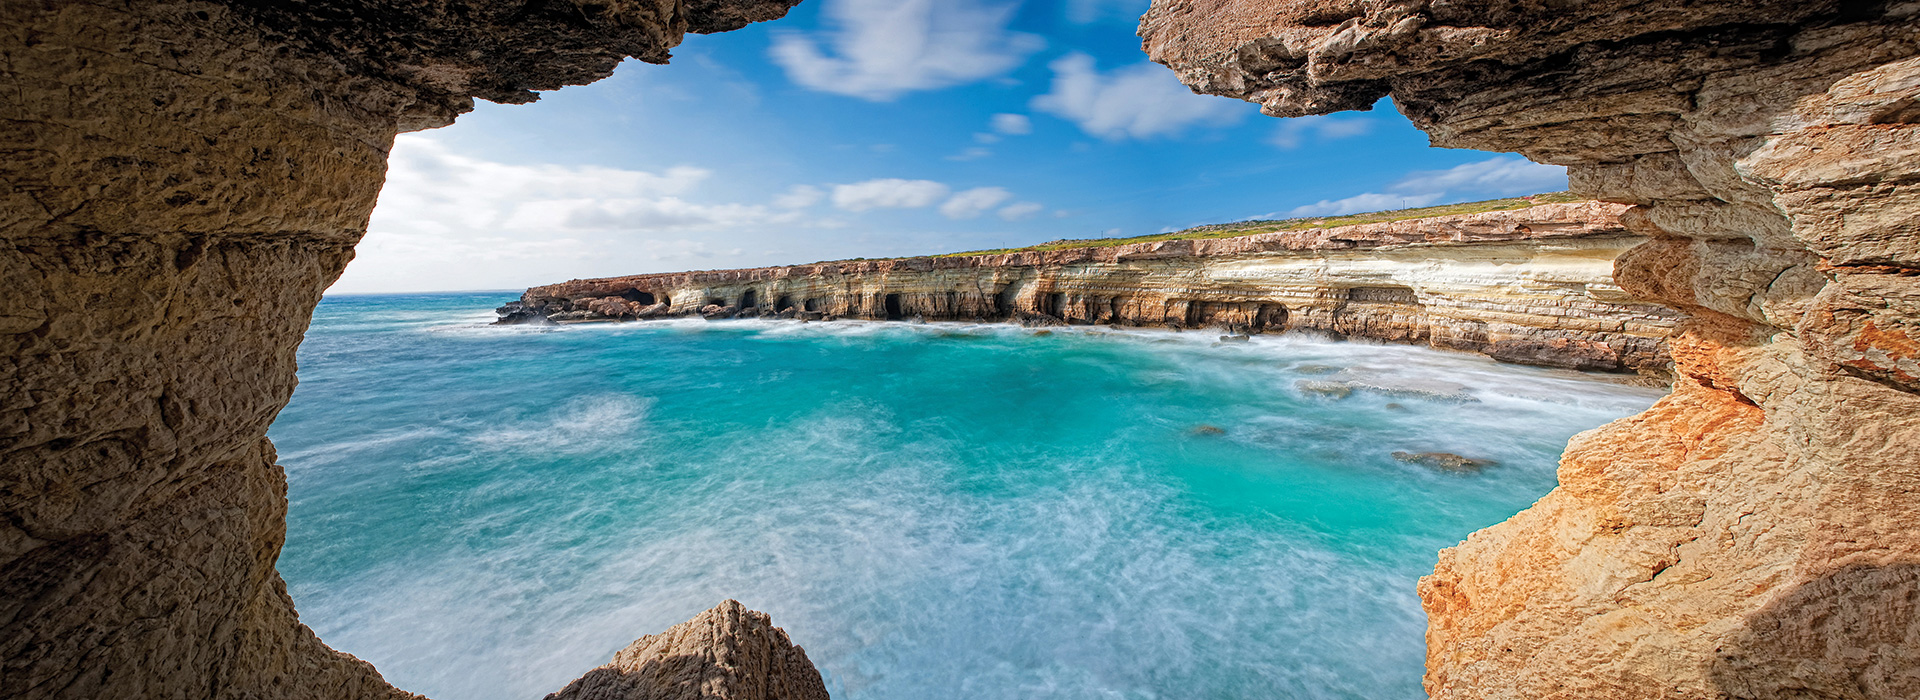 http://mycyprusinsider.com/wp-content/uploads/2015/02/4-SEA-CAVES-CAPE-GRECO-LOW-18057130.jpg